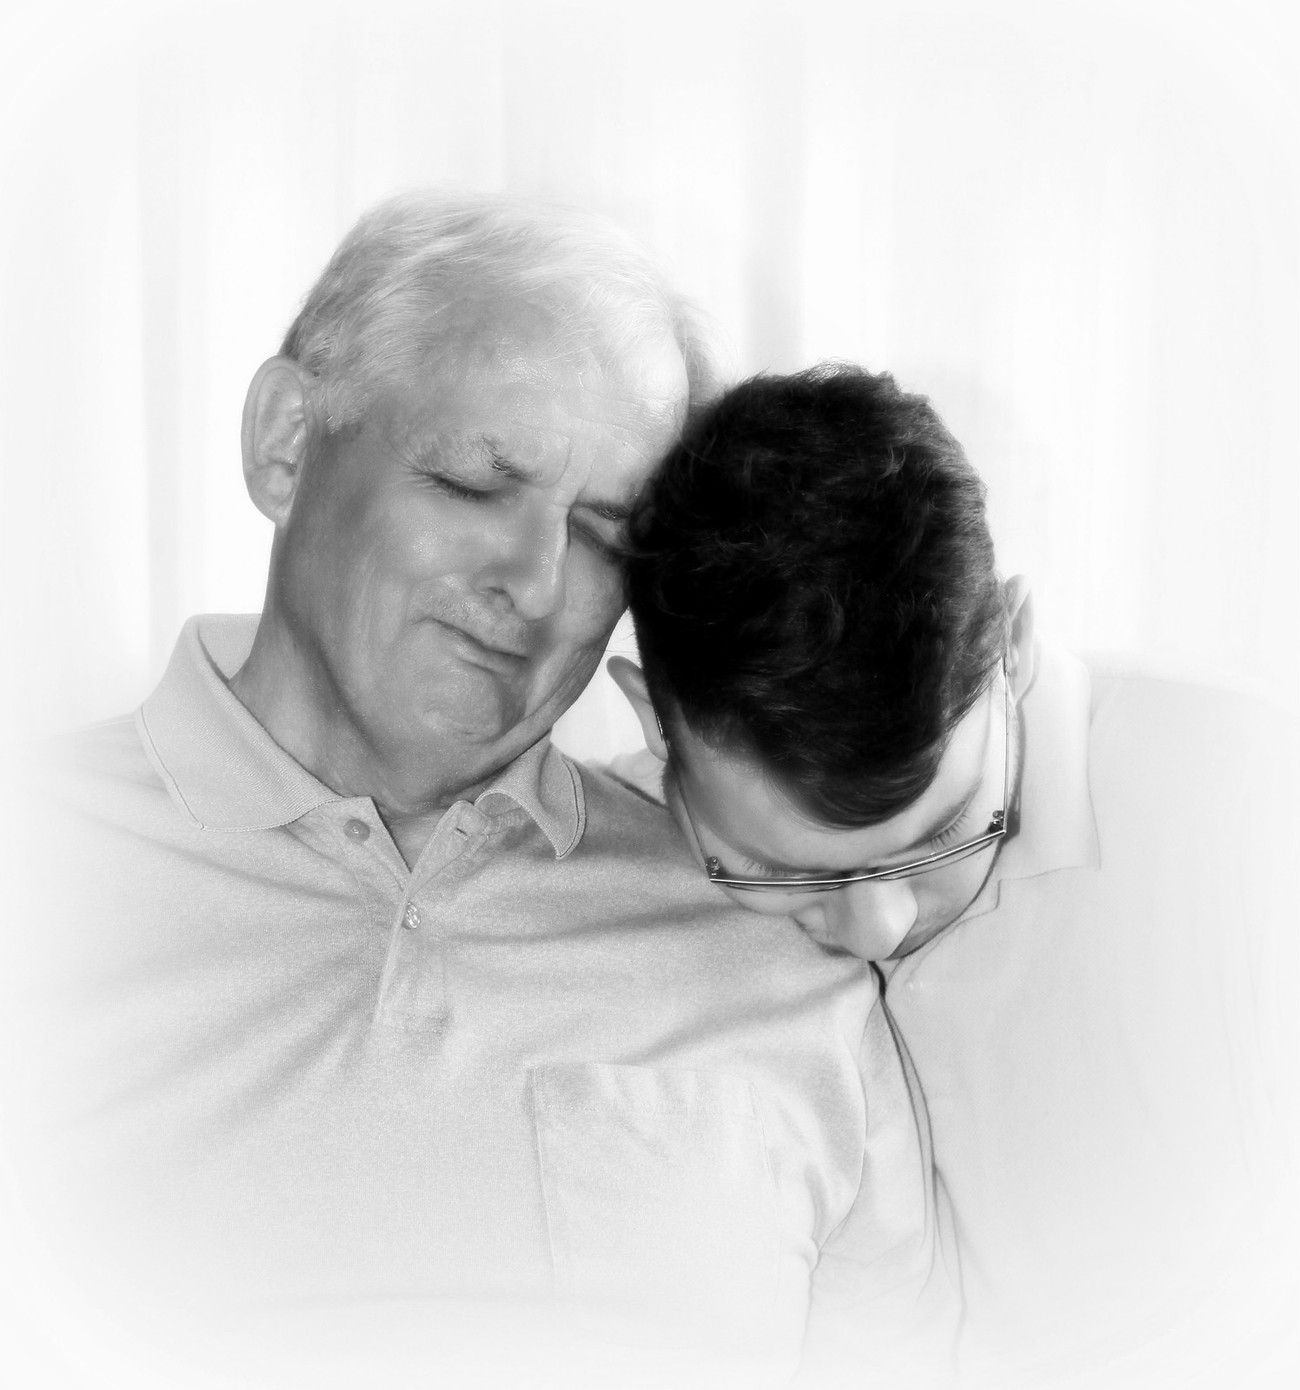 A father and son in a tender moment because of an illness